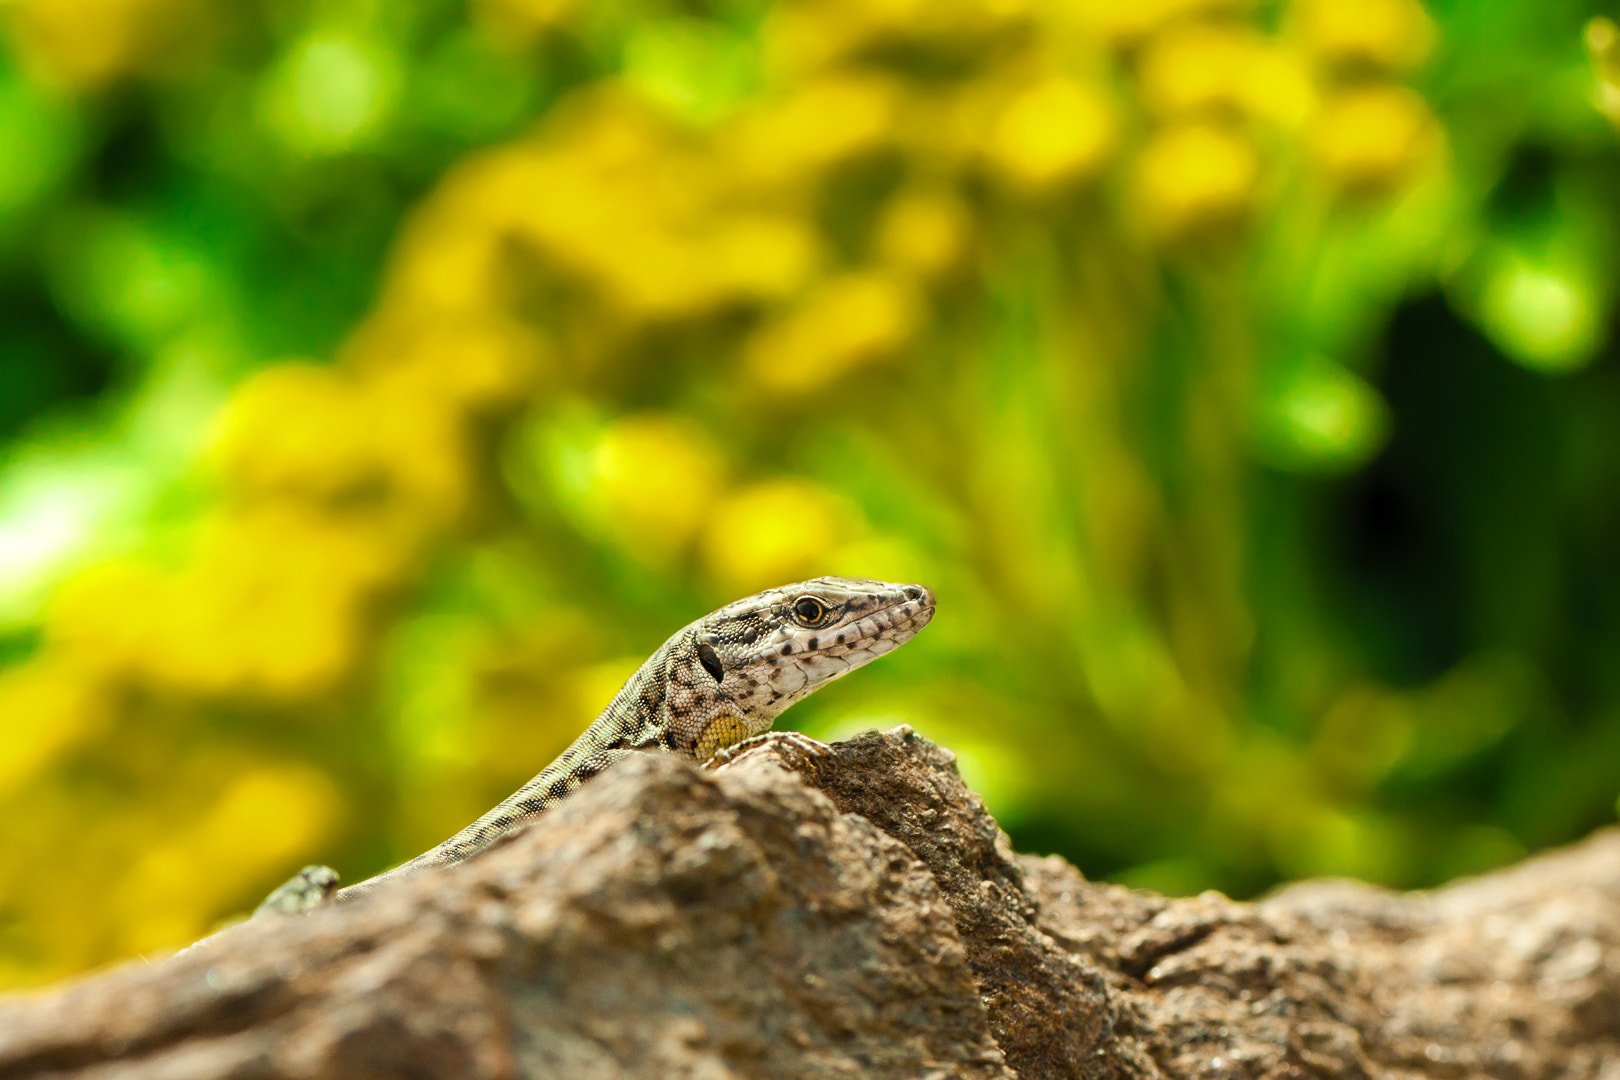 Photograph Sunbathing by Andres Gutierrez on 500px